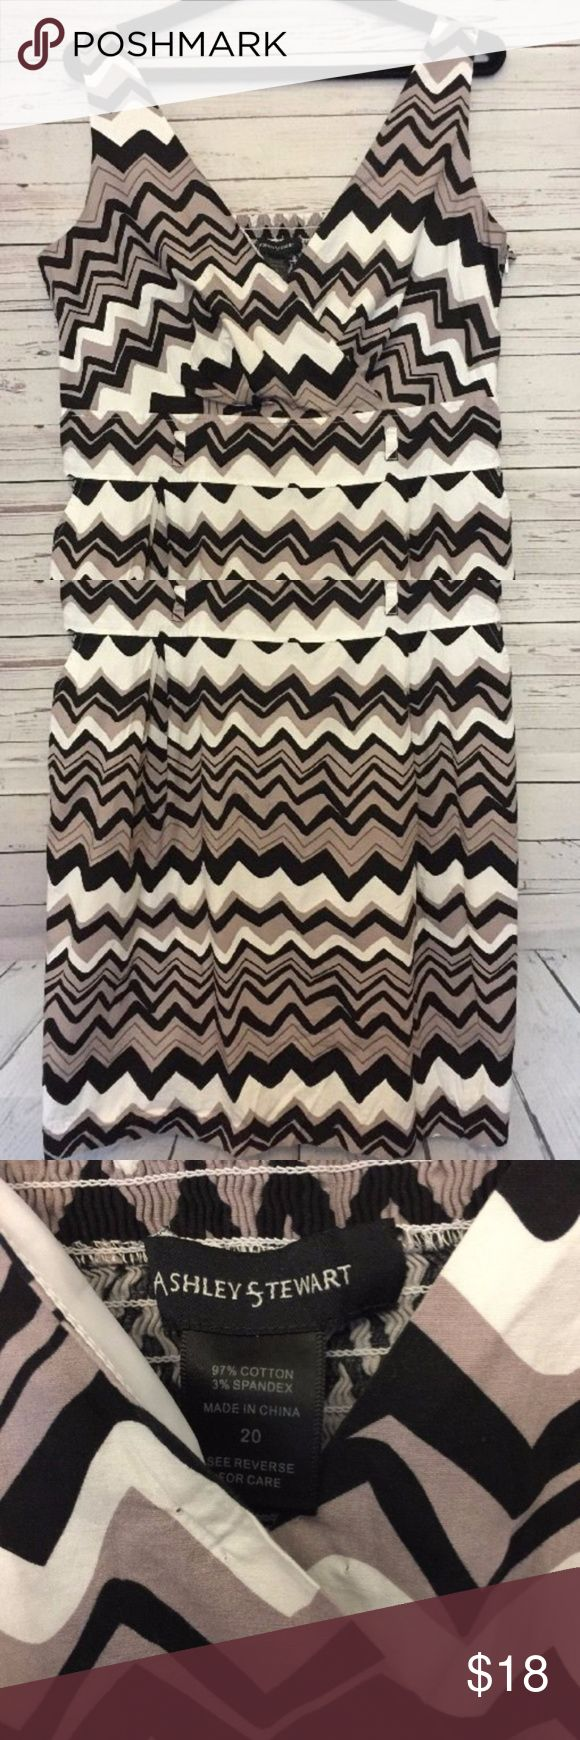 Ashley Stewart Plus Size Chevron Dress Bus 21 in, Length 40 in. Ashley Stewart Dresses Midi